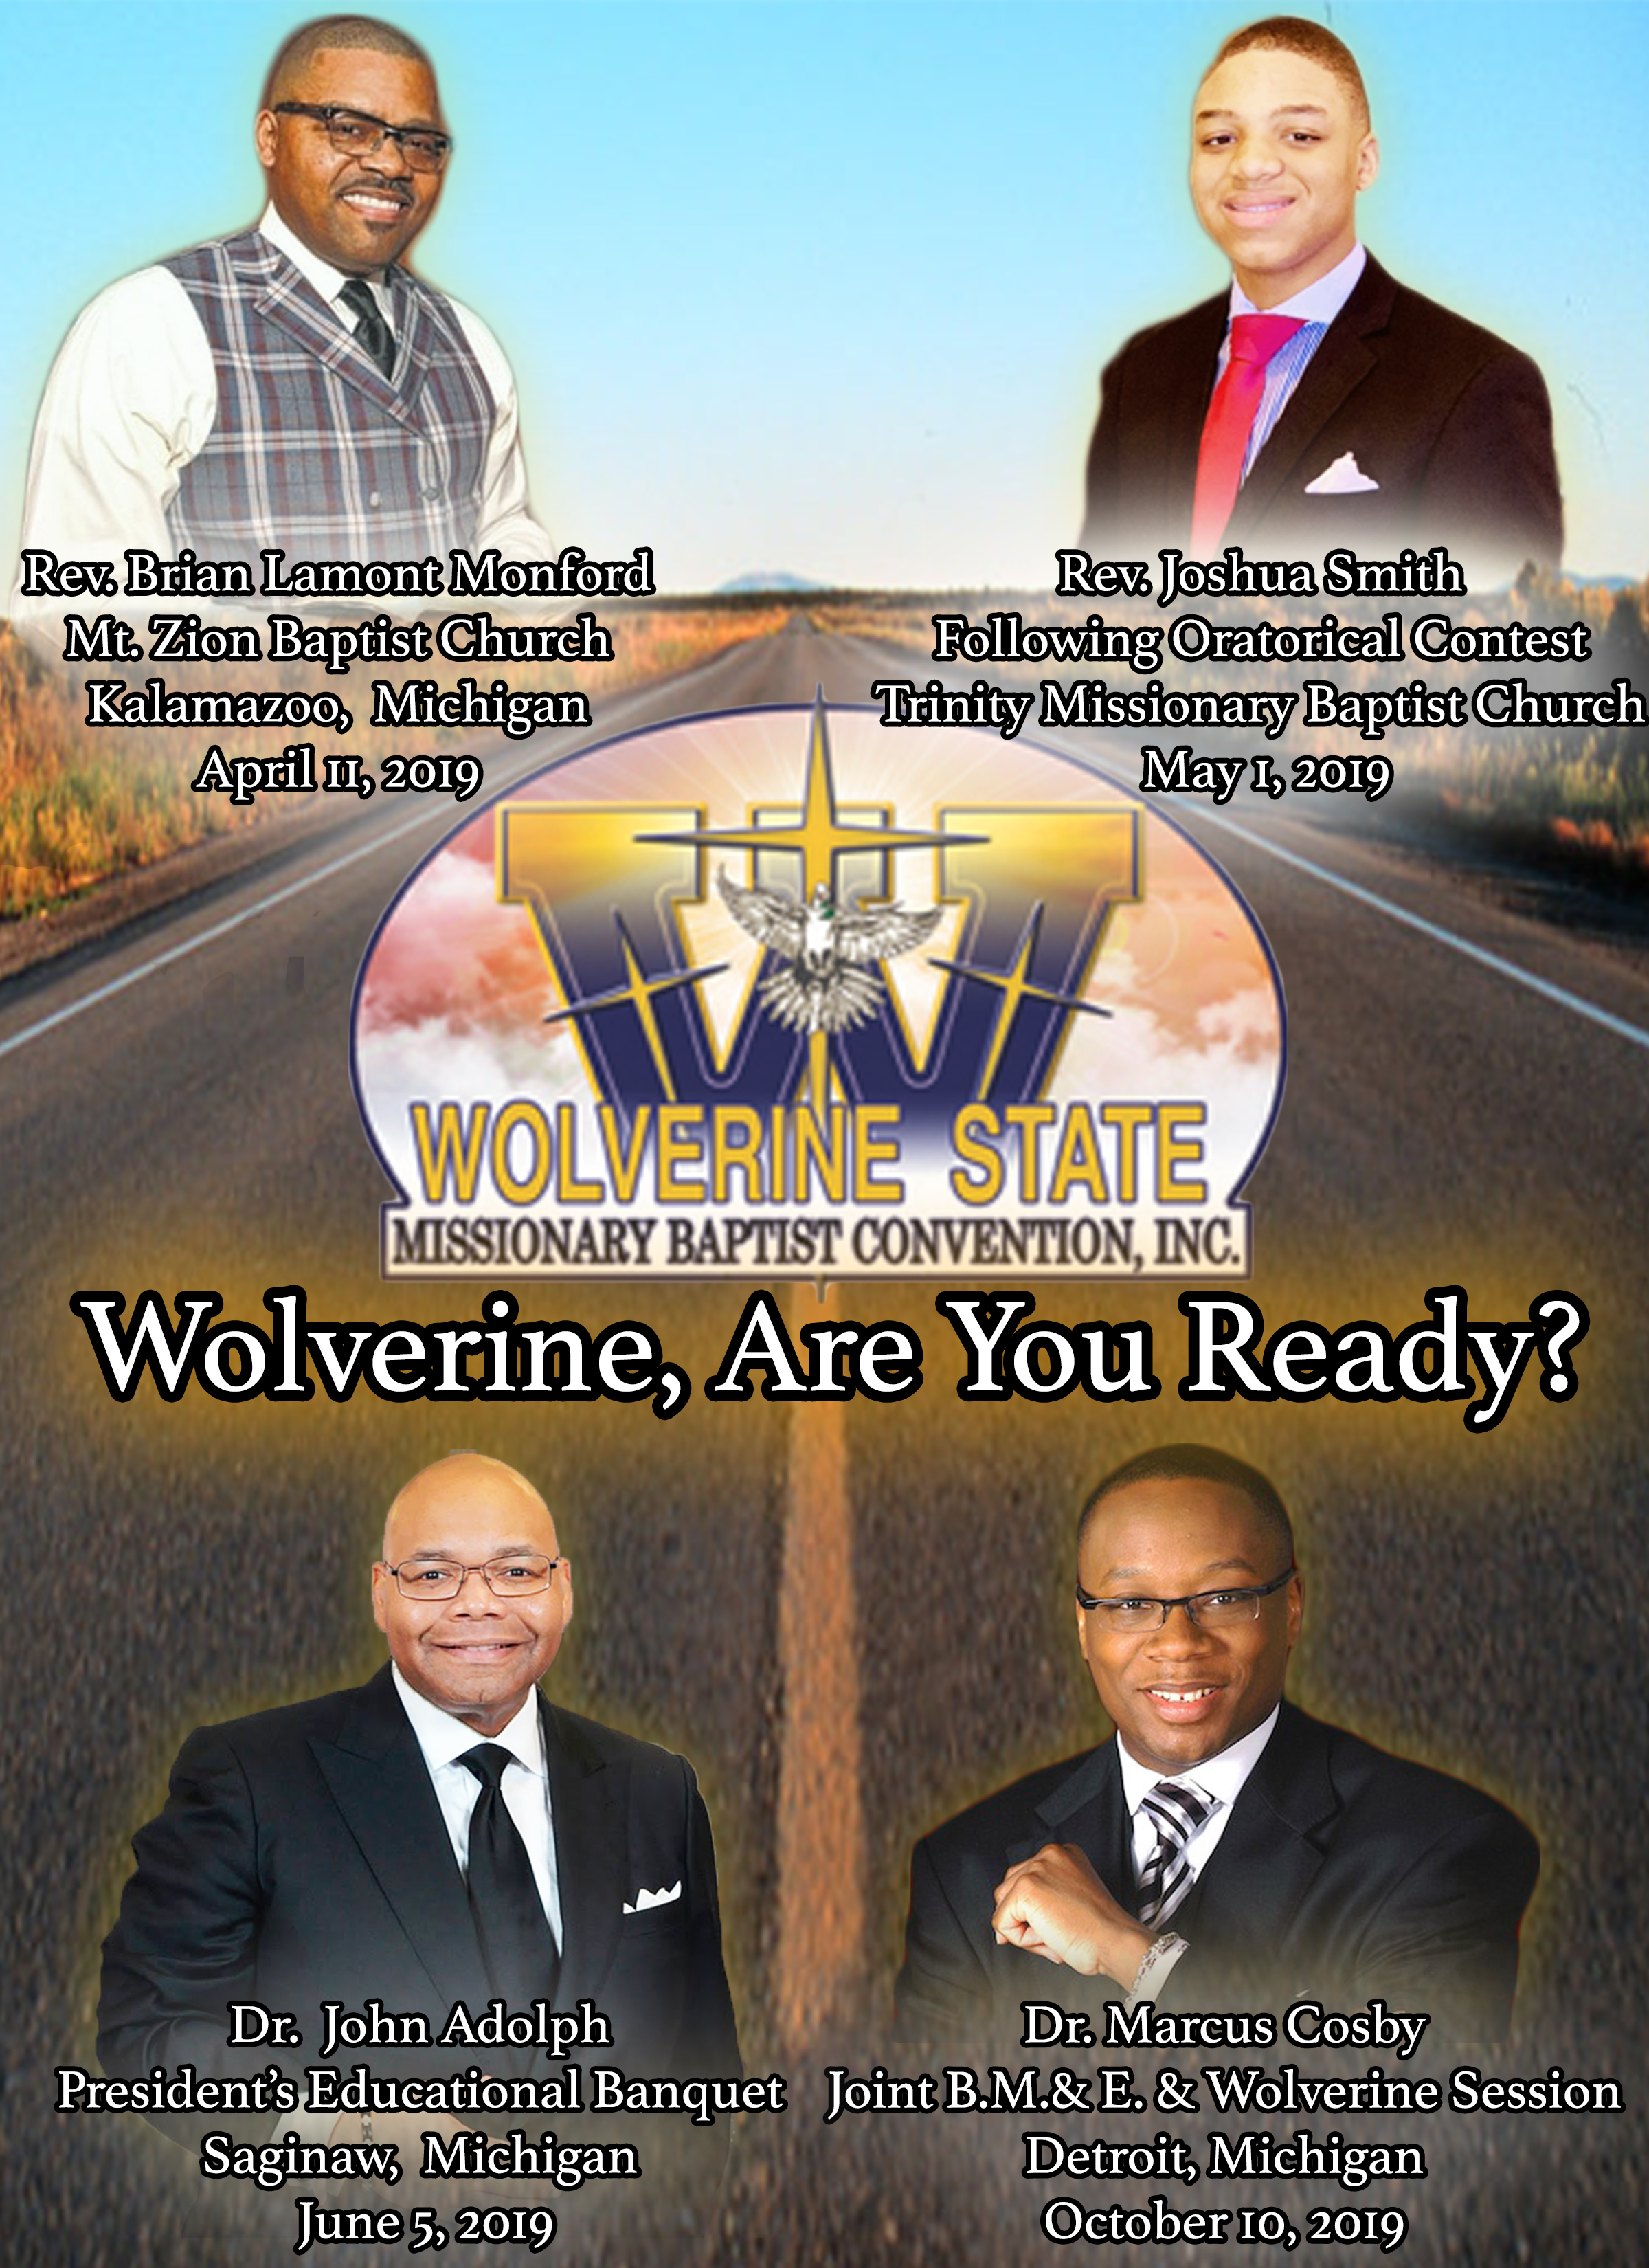 Congress of Christian | Wolverine State Missionary Baptist